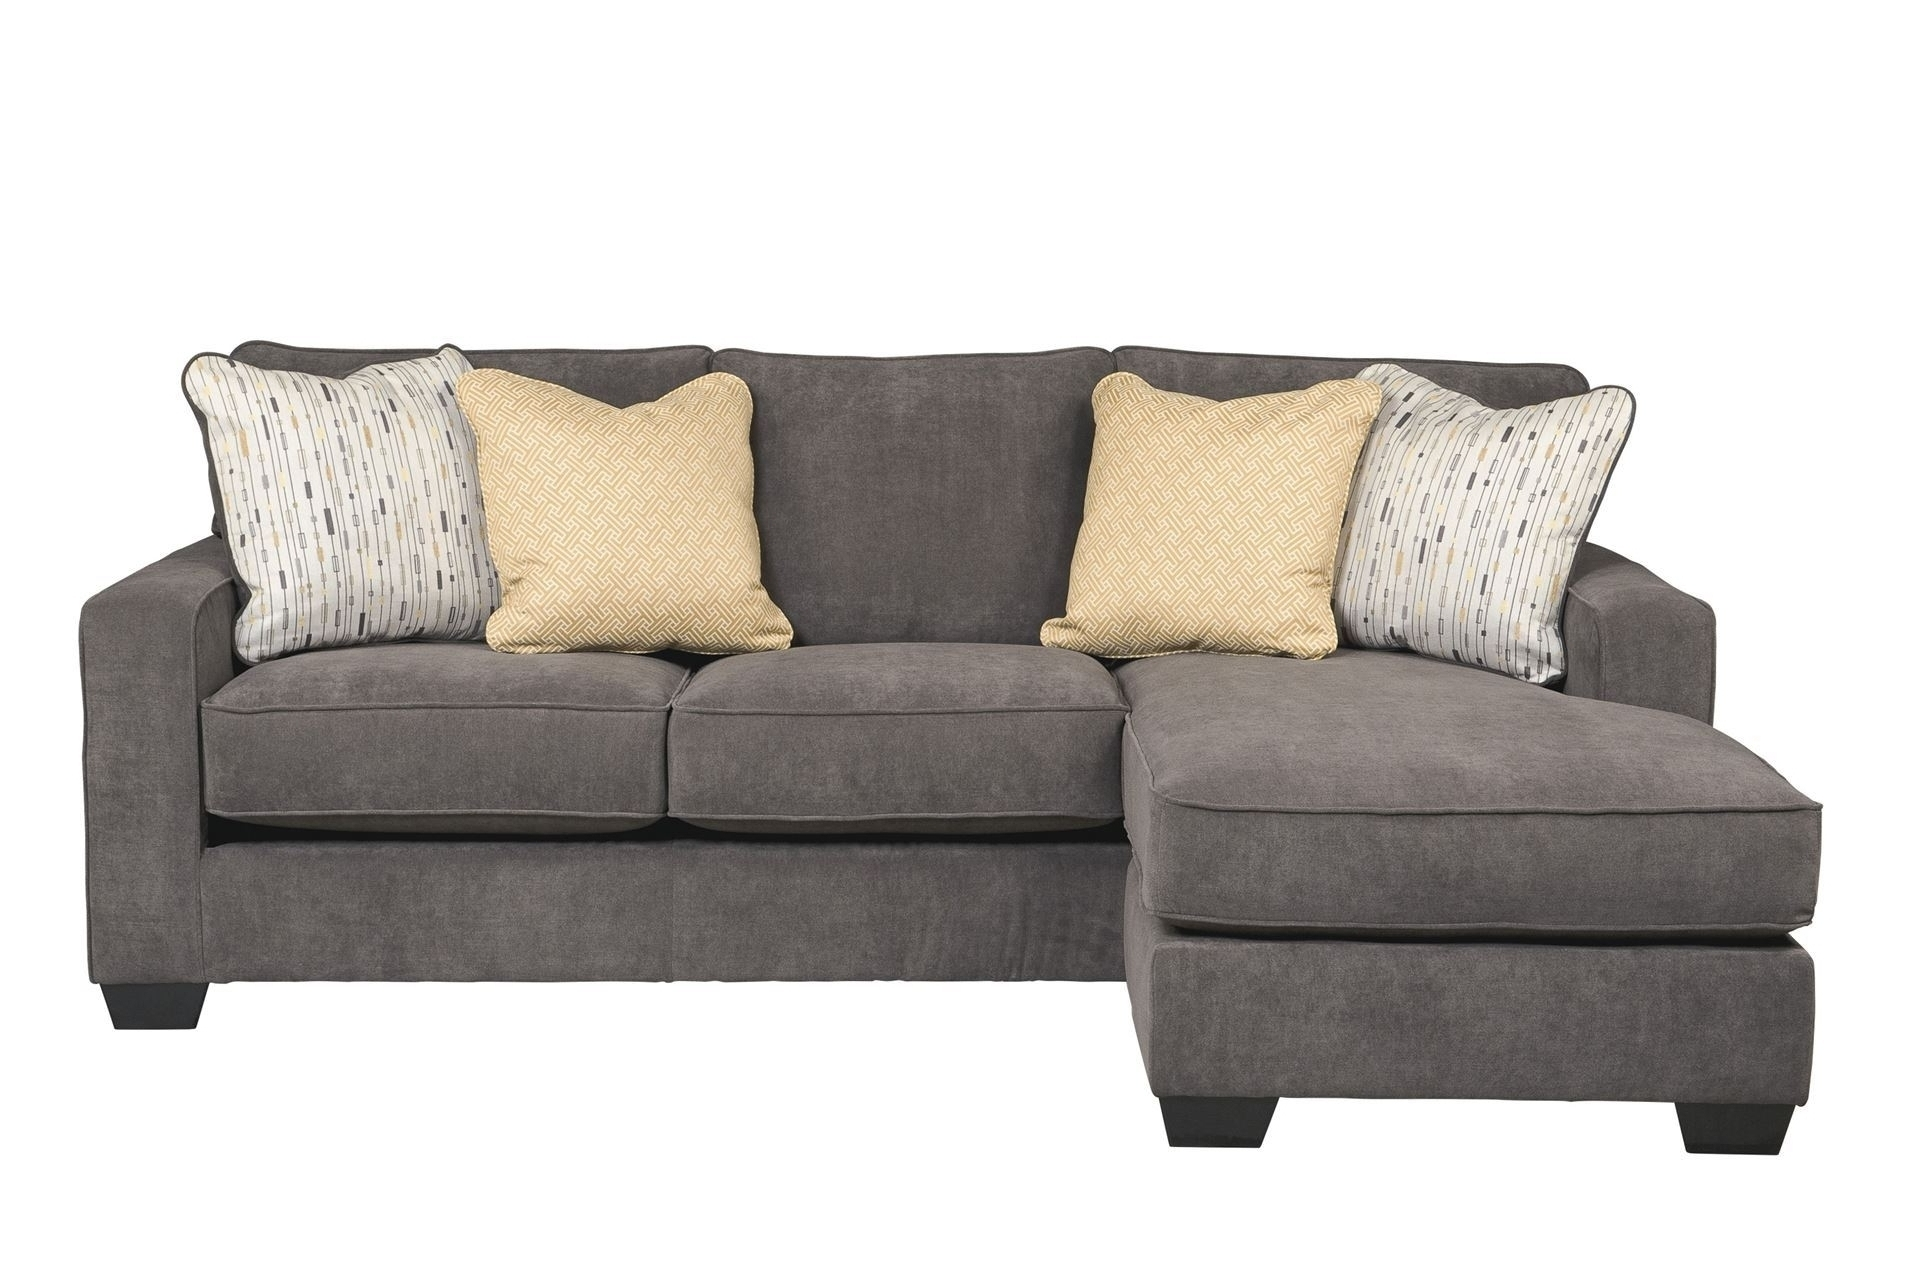 Furniture: Exciting Sectional Sofa Covers With Best Colors For With Regard To Most Popular Chaise Sofa Covers (View 10 of 15)